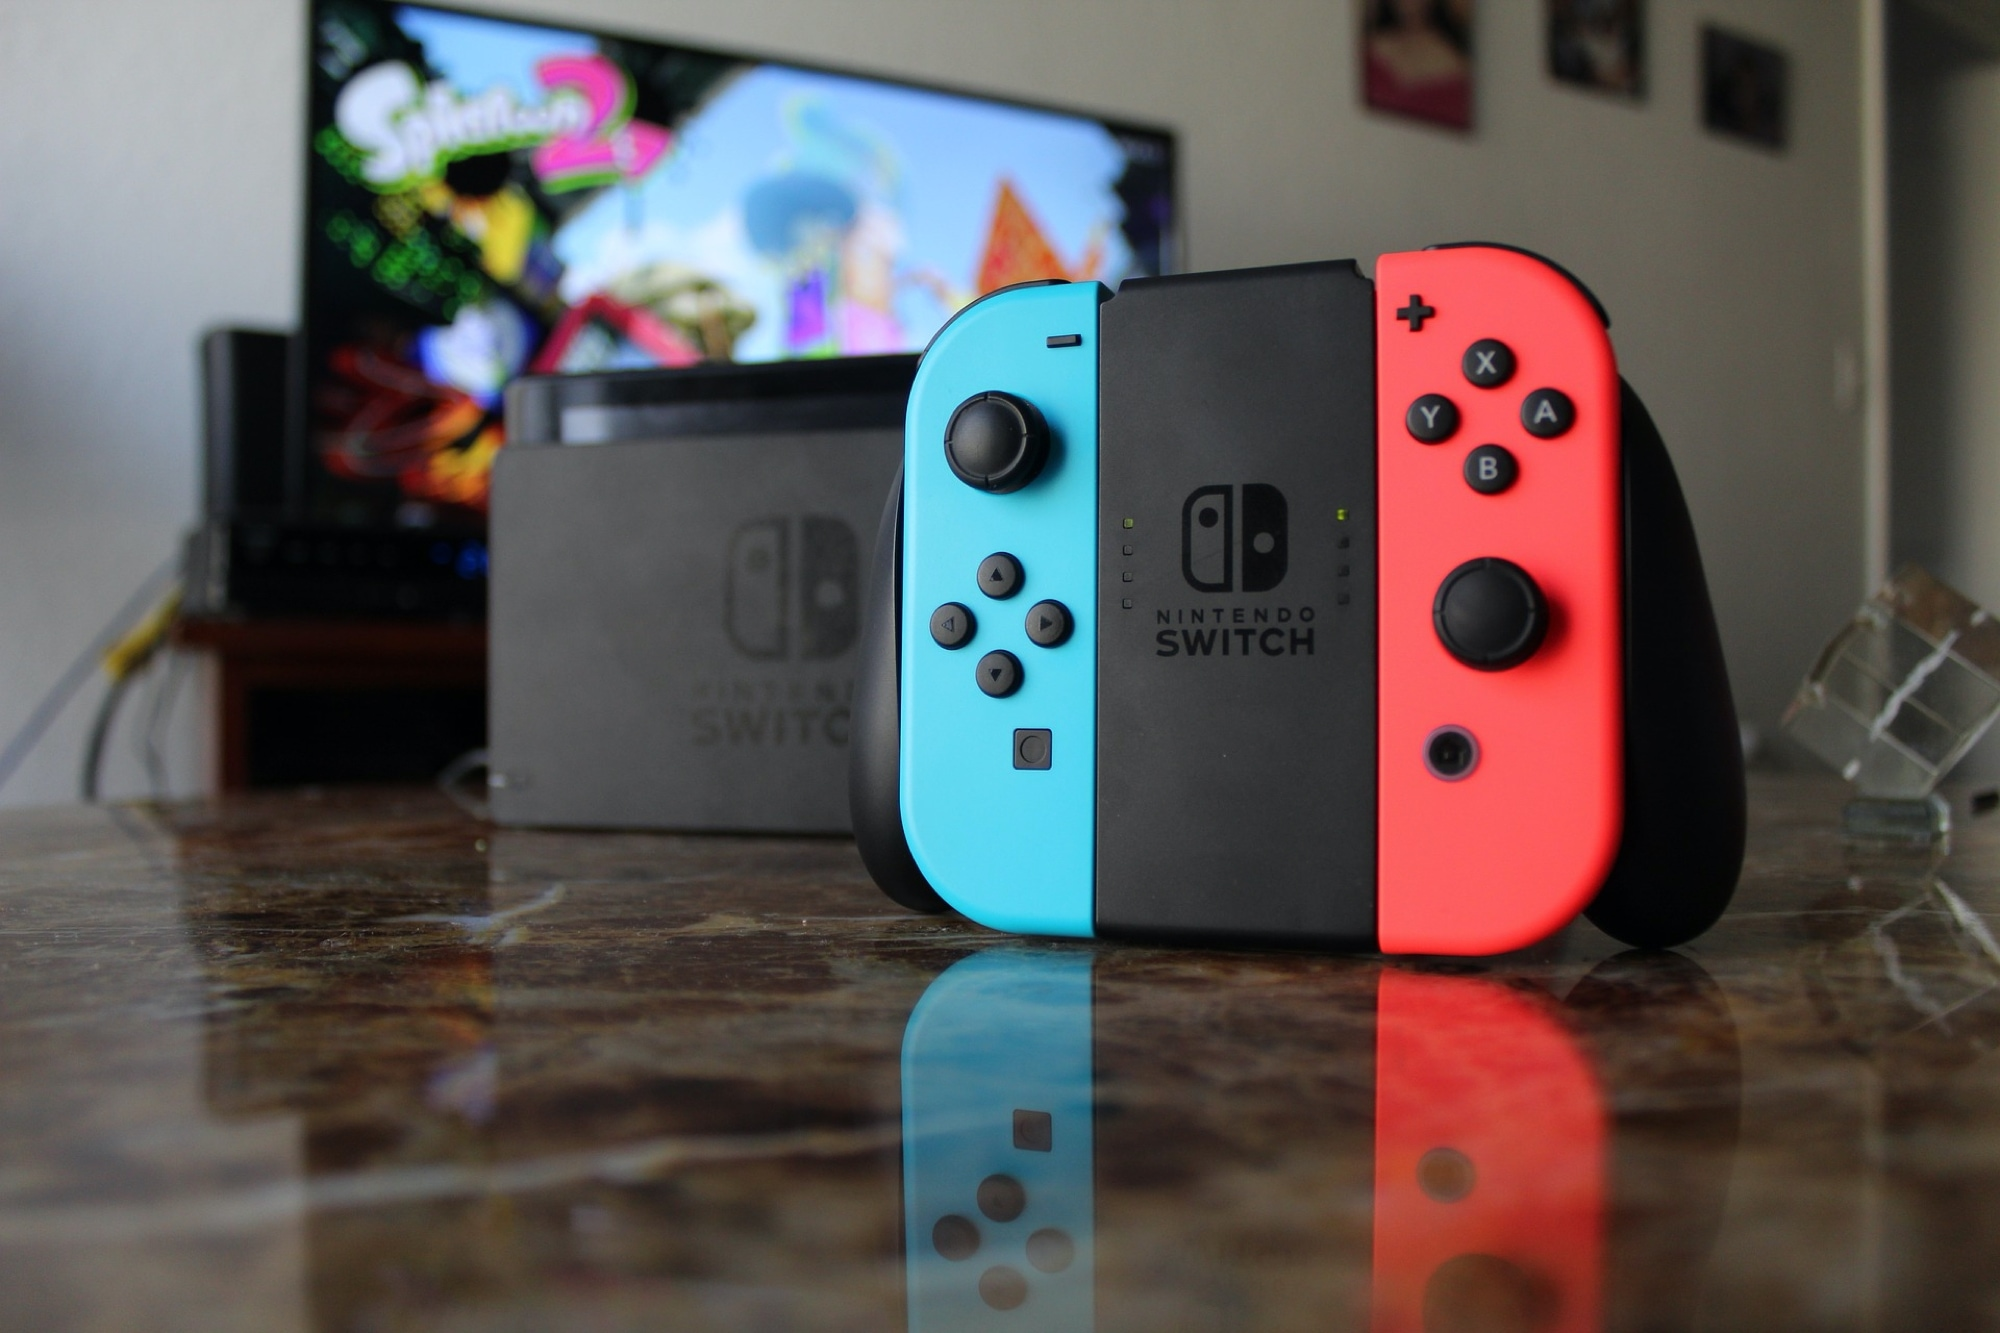 Nintendo Switch Joy Con Controllers in Grip - Pixabay